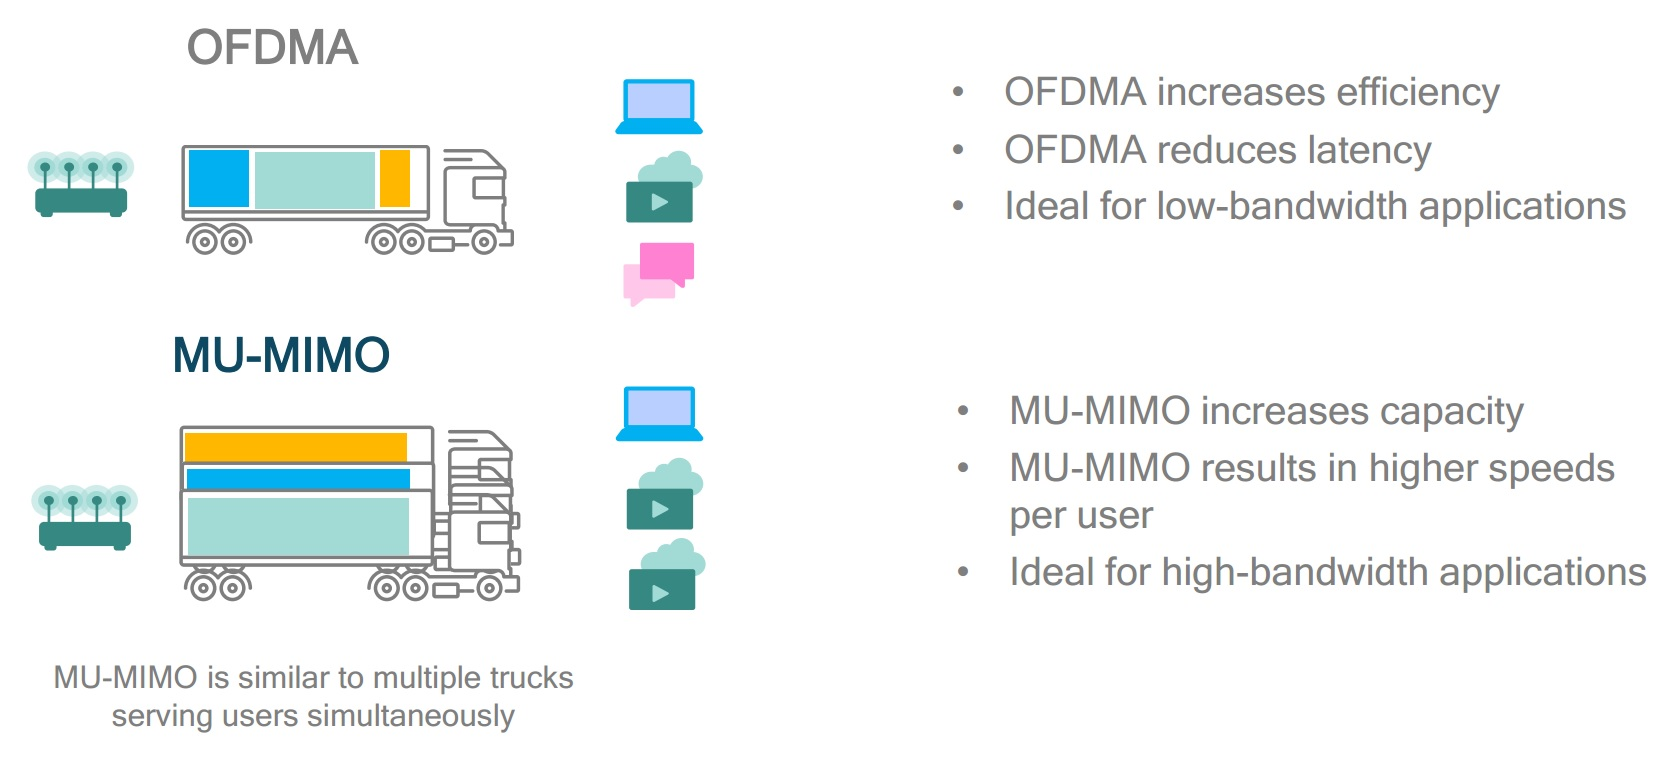 Ieee 80211ax Mimo Wiring Diagram Ofdma And Mu Complement Each Other Source Qualcomm 2016 Slide 18